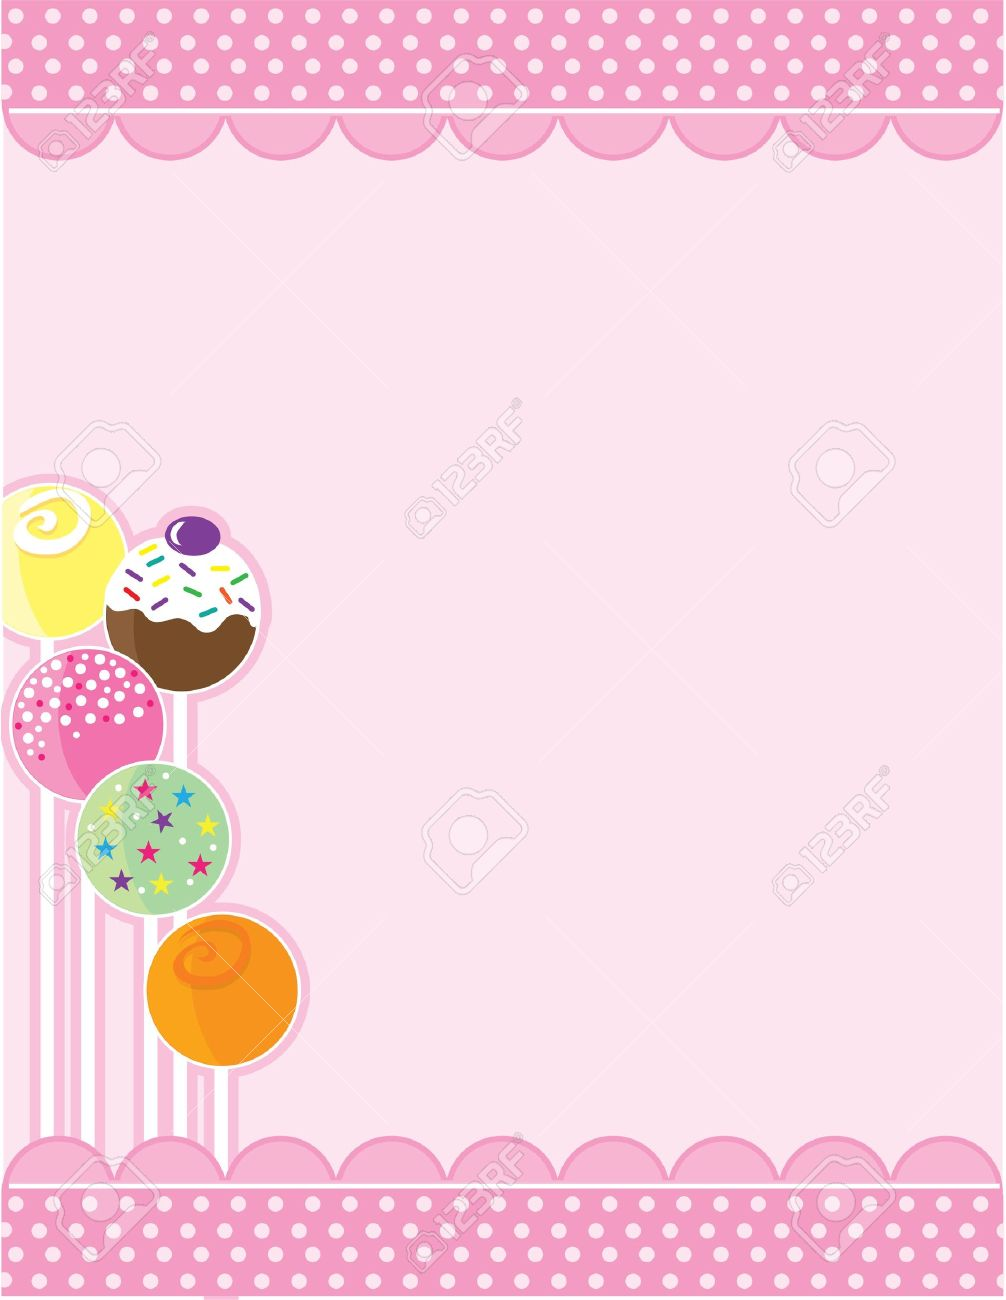 Background image bottom 0 - A Pink Background With Top And Bottom Decorative Borders A Stand Of Candy Pops Embellishes